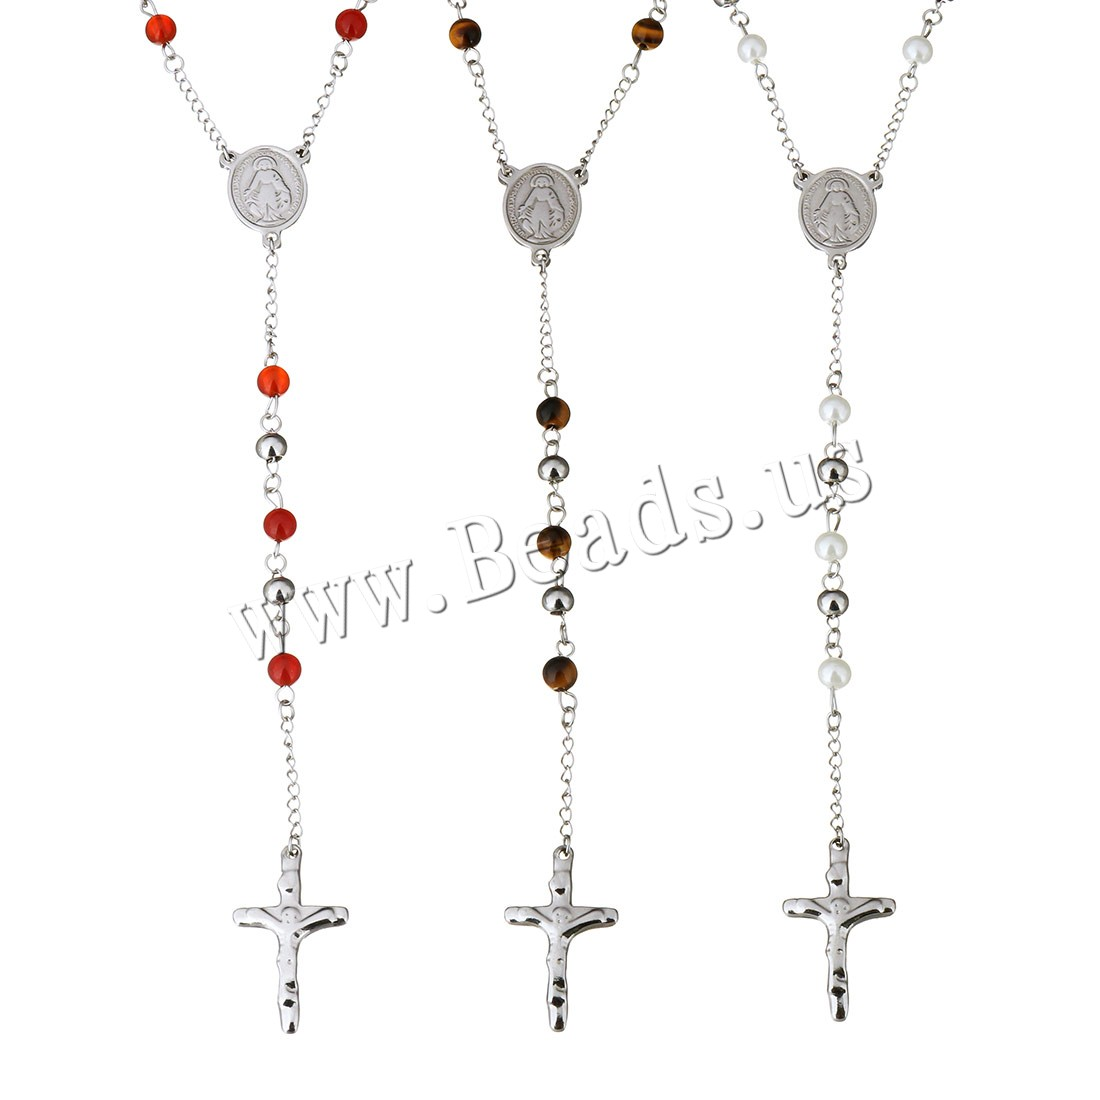 Buy Stainless Steel Sweater Chain Necklace 1Inch extender chain Crucifix Cross different materials choice & woman original color 17x22mm 19.5x32mm 6mm Sold Per Approx 26 Inch Strand